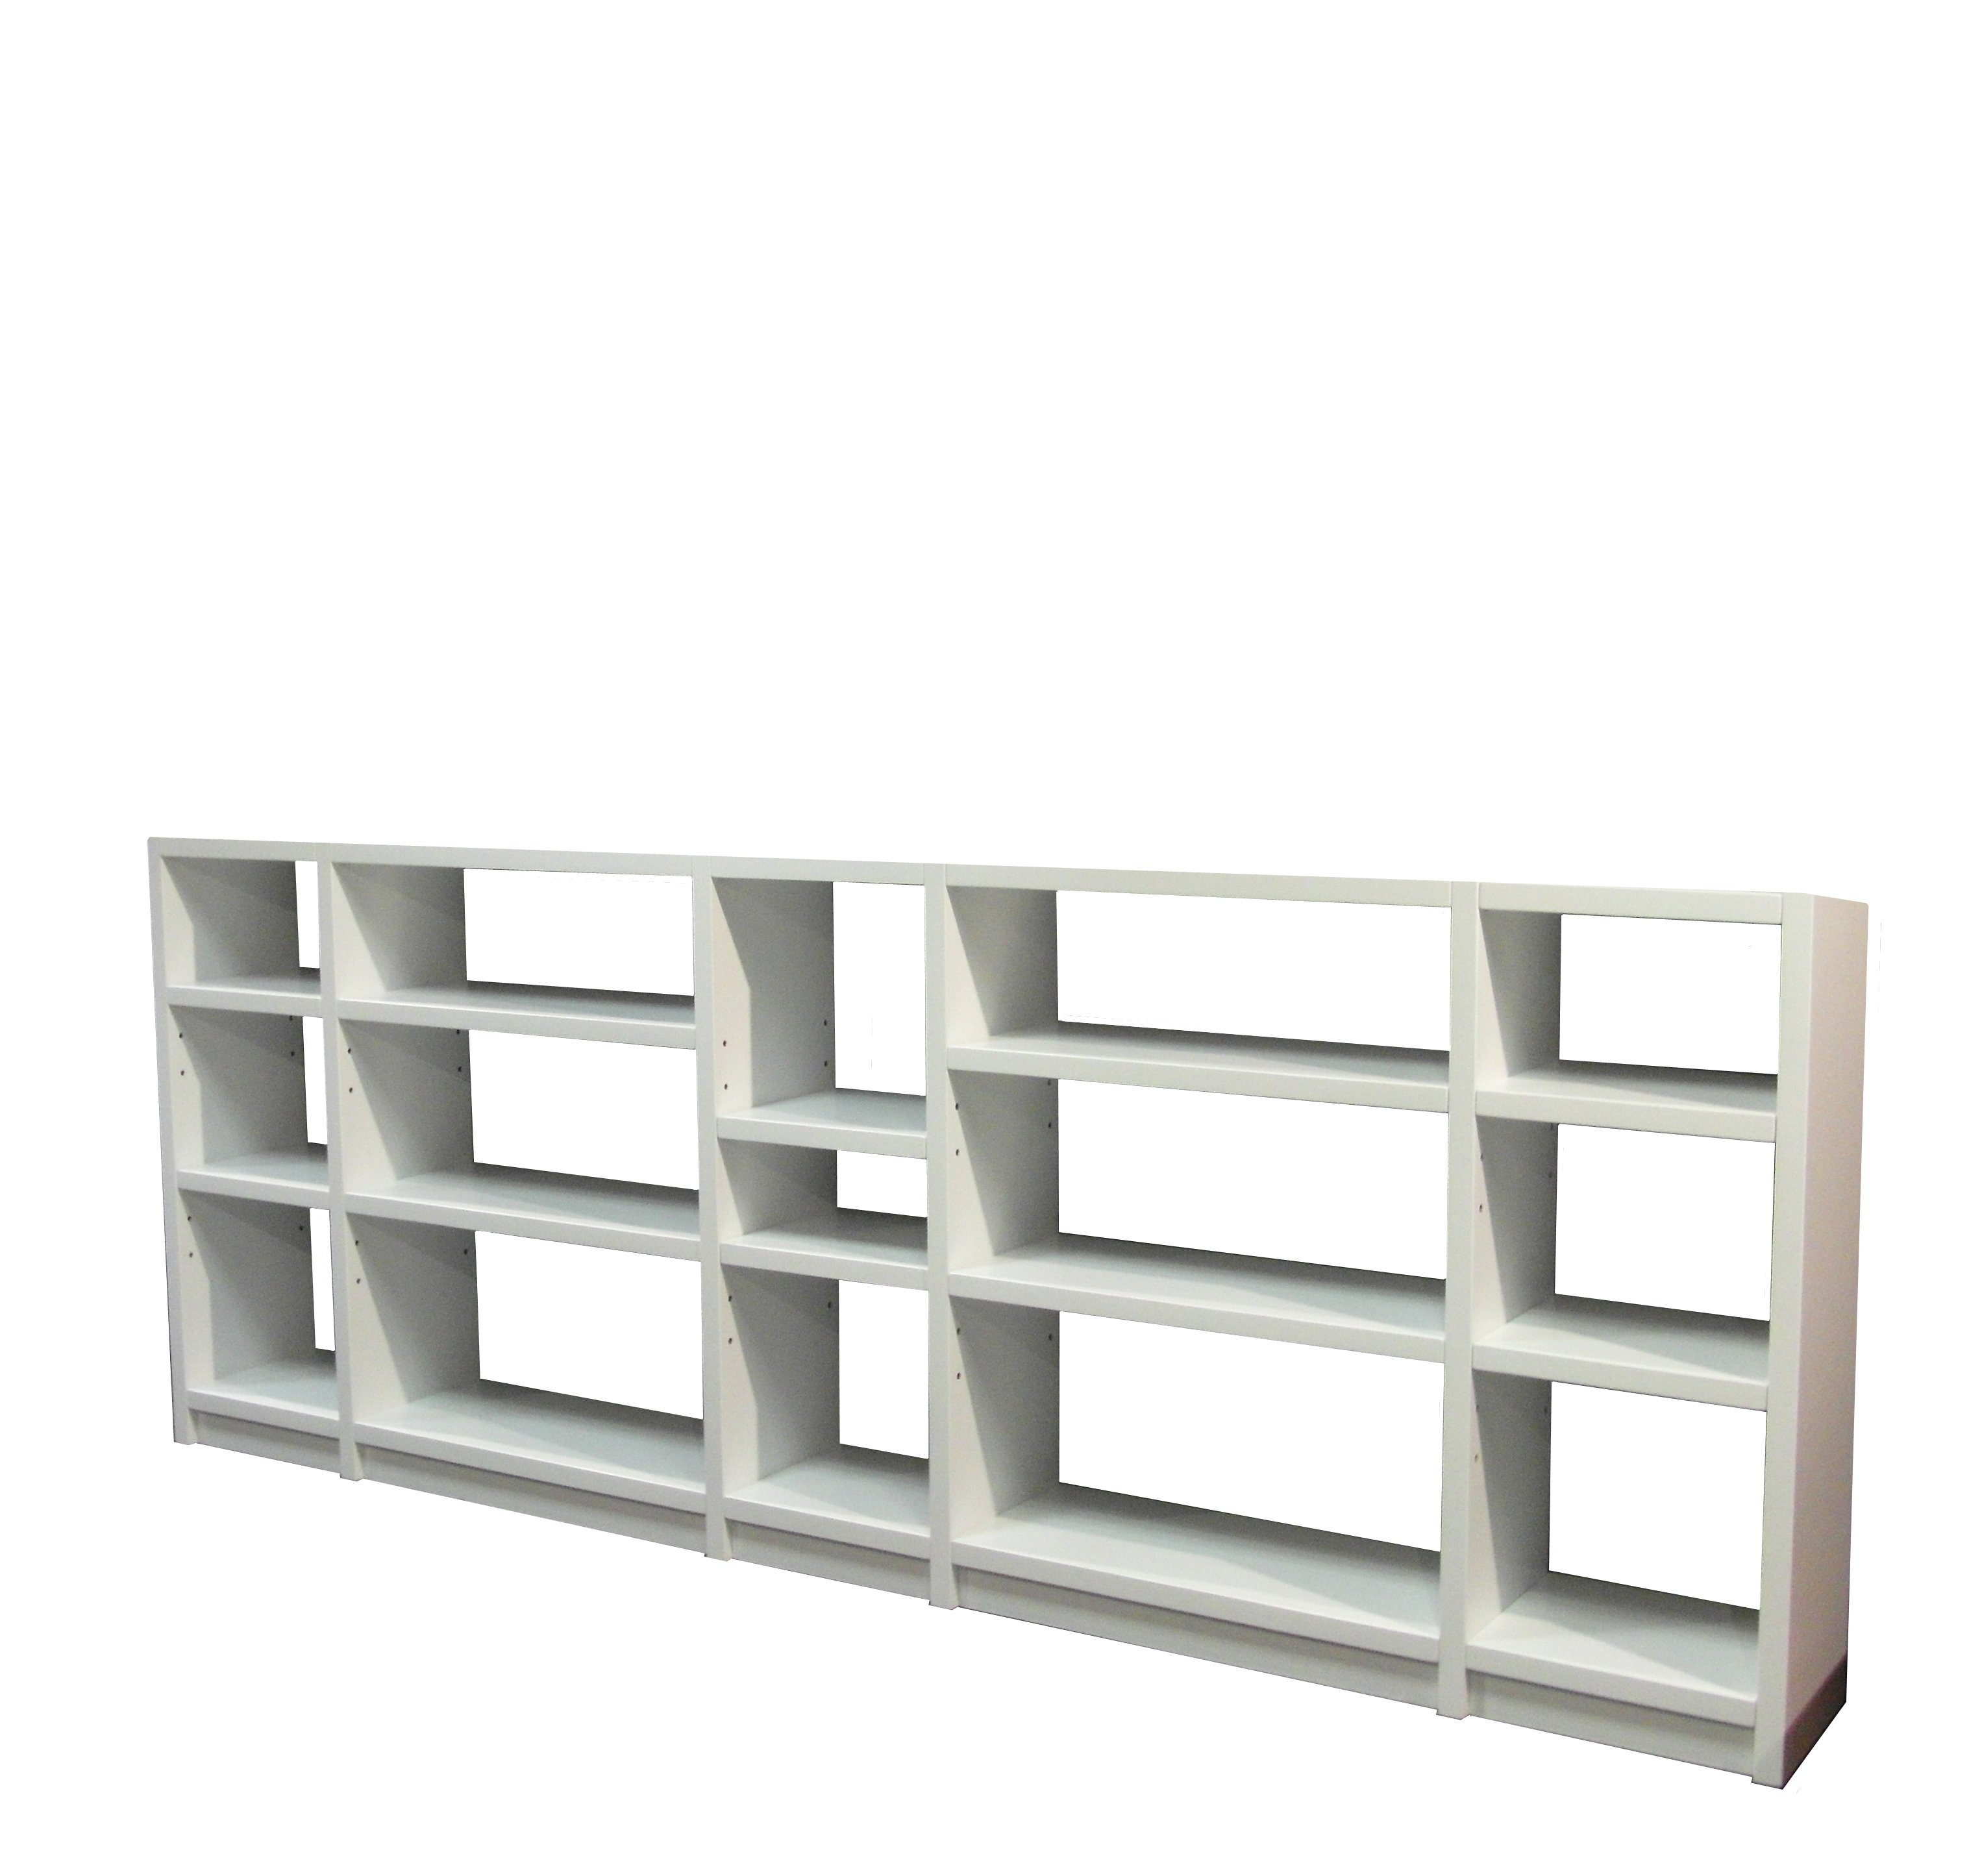 white bookcases furniture en bookcase storage space gb glass billy adjustable according ikea to book your shelves adapt products between needs shelf oxberg